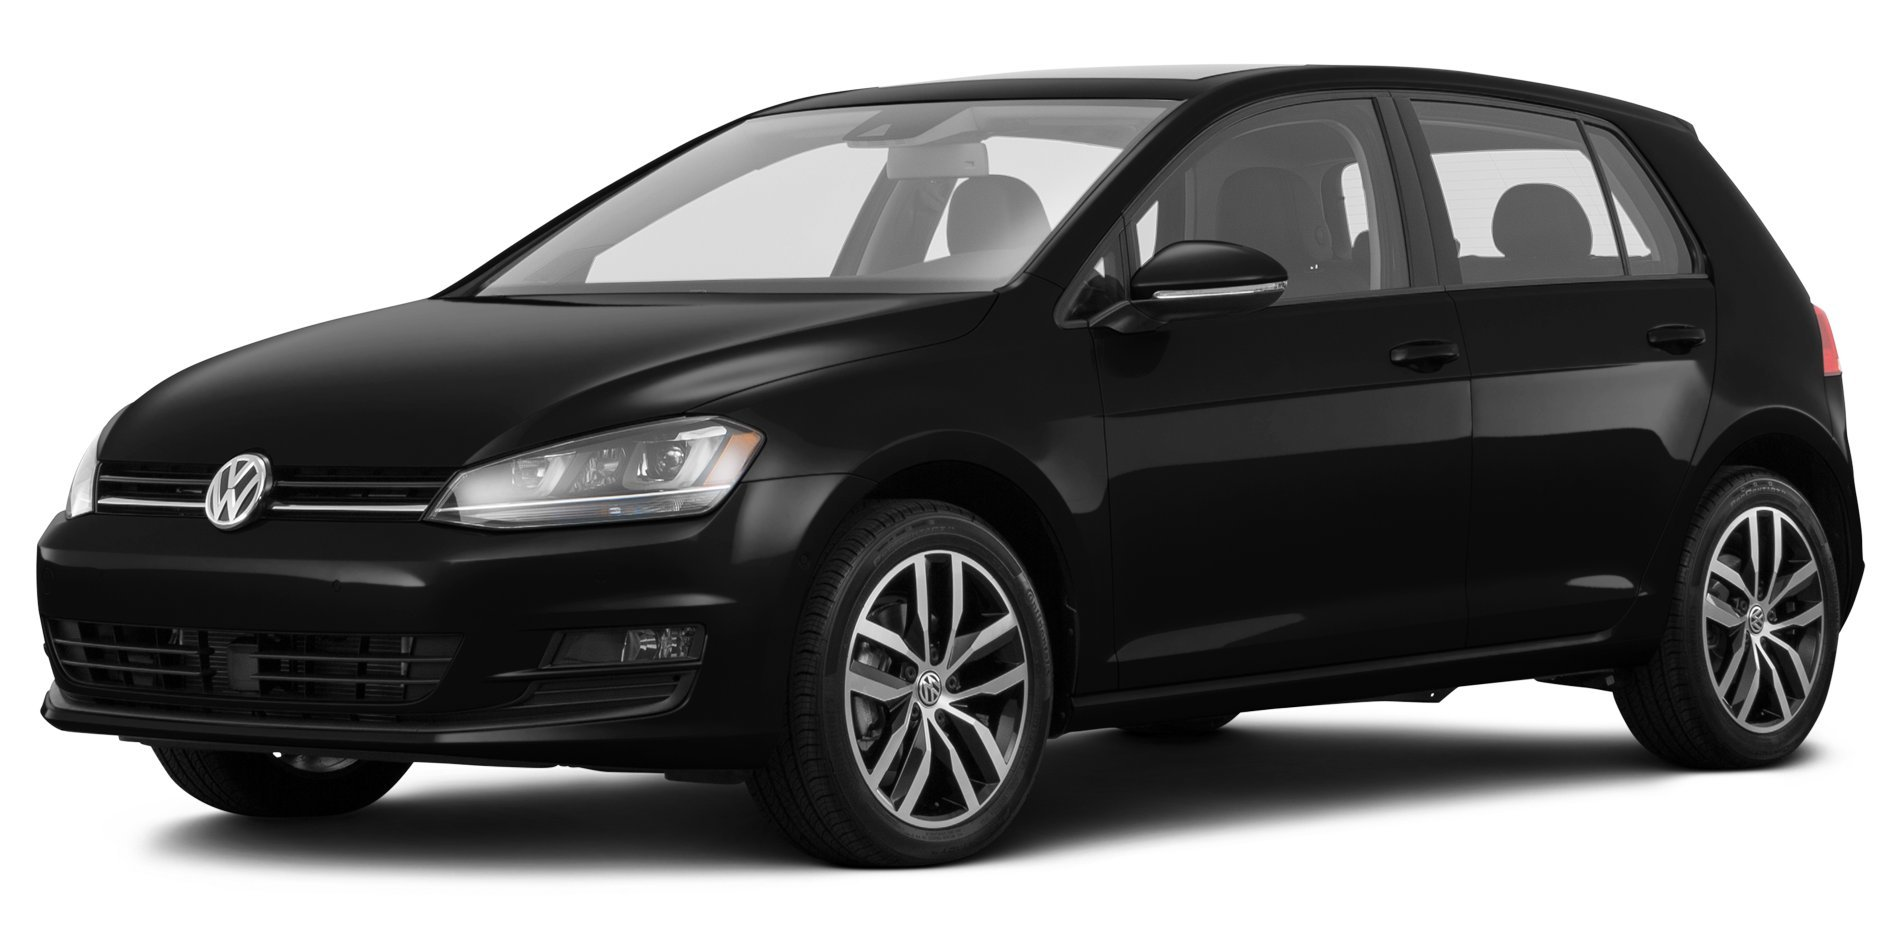 2016 nissan altima reviews images and specs vehicles. Black Bedroom Furniture Sets. Home Design Ideas